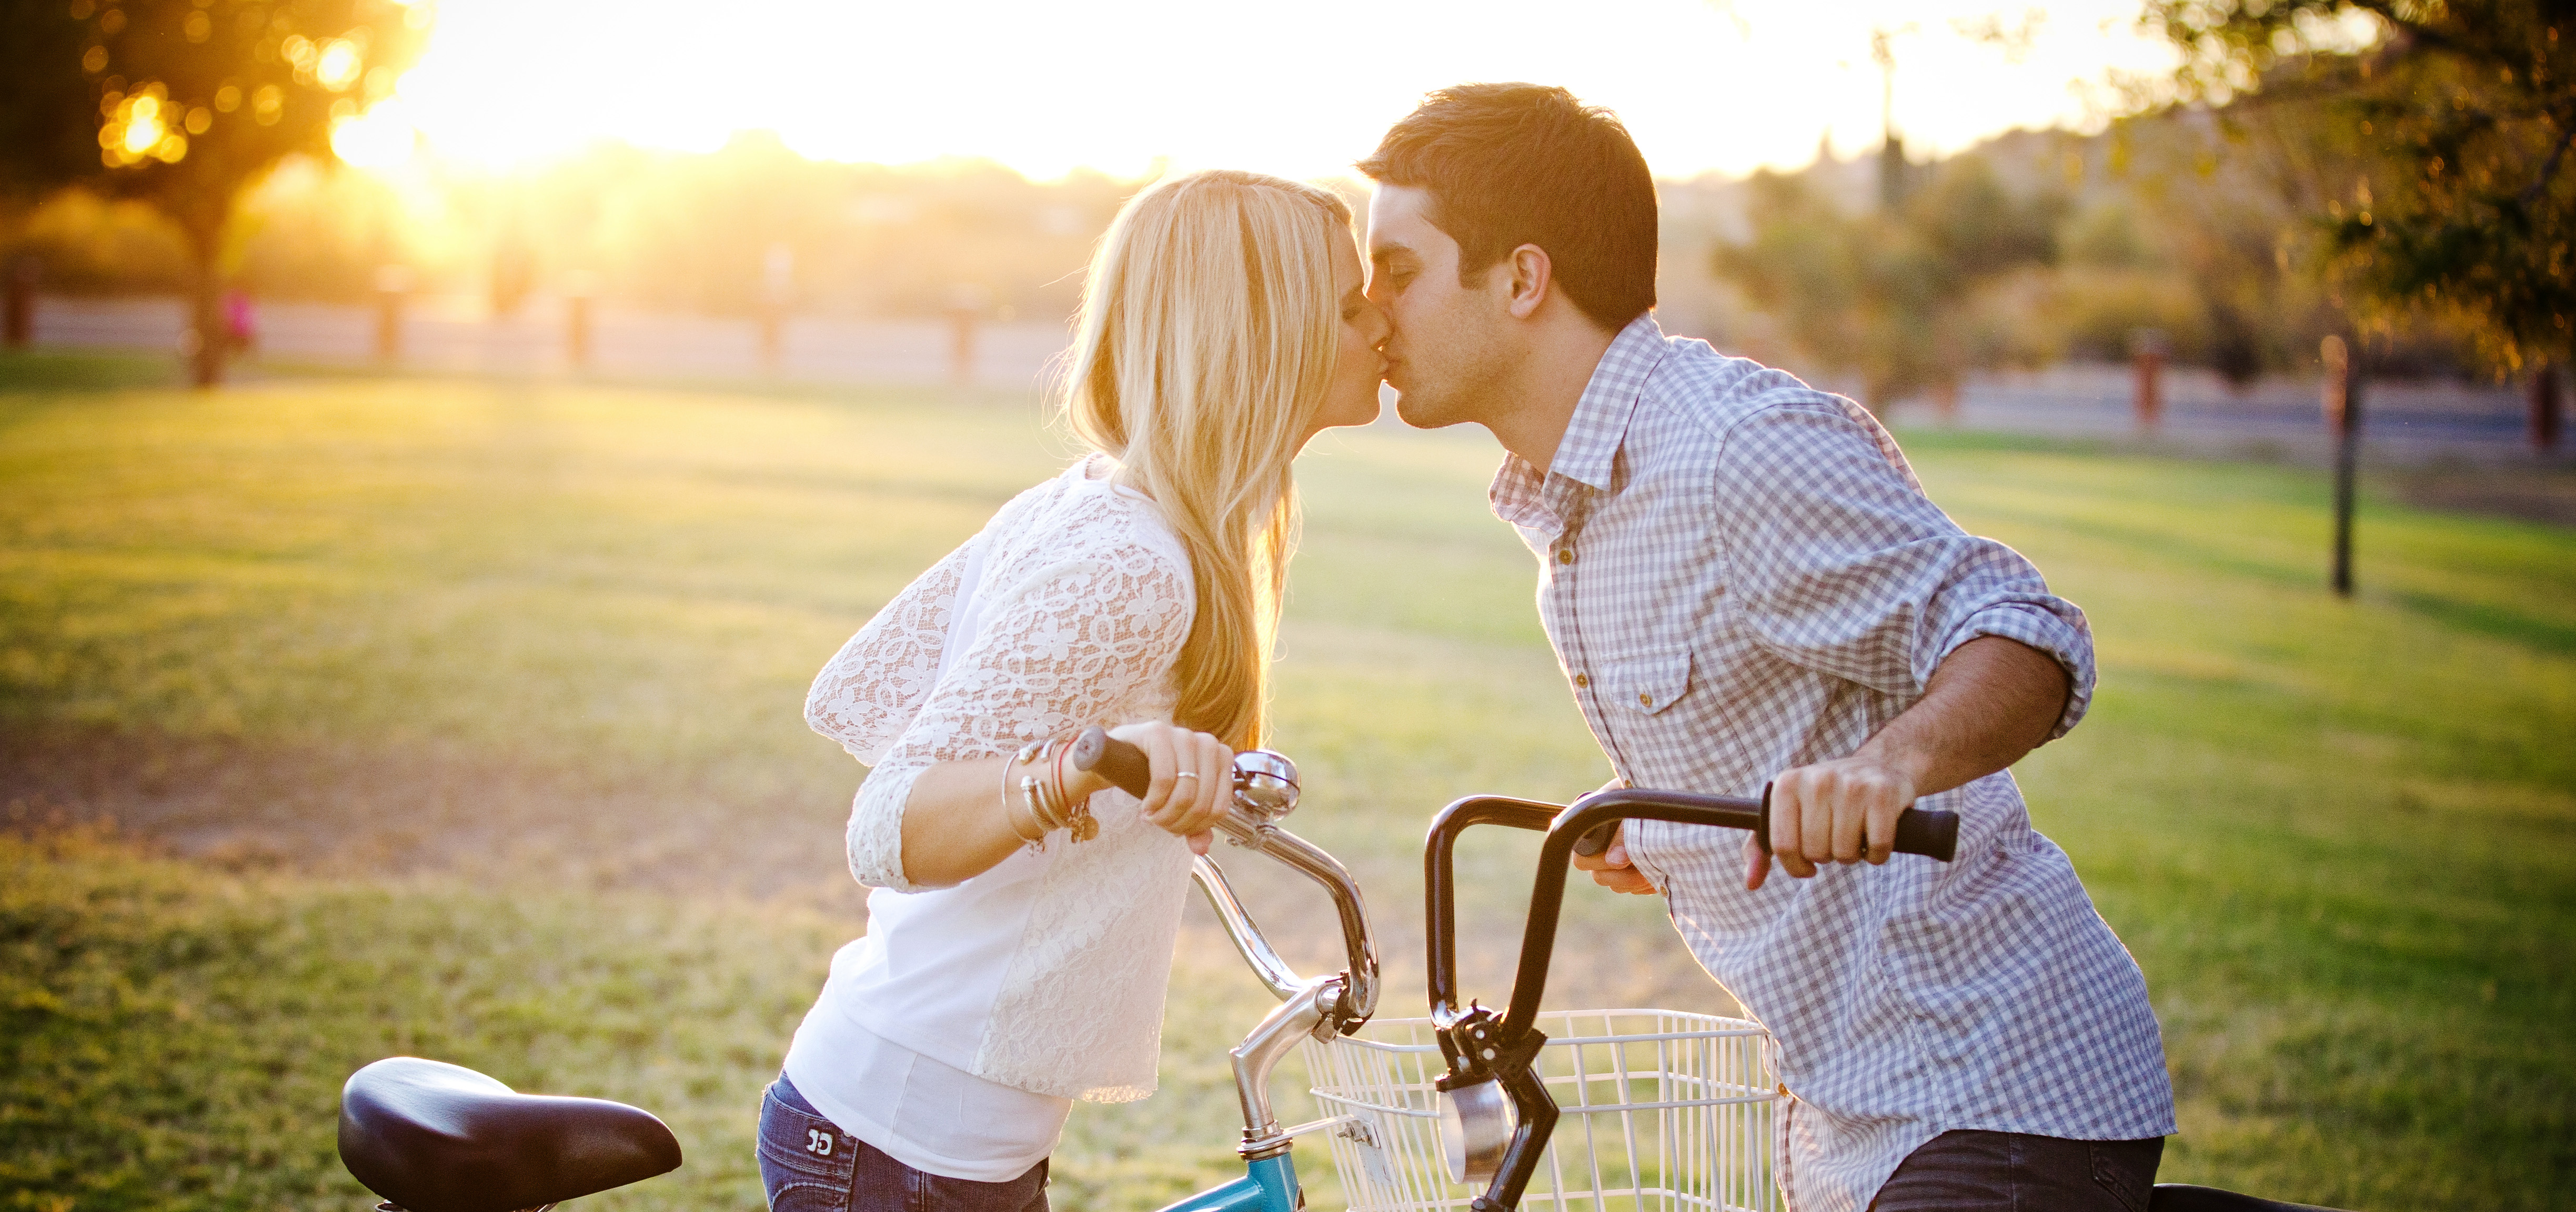 Fun engagement session with bikes